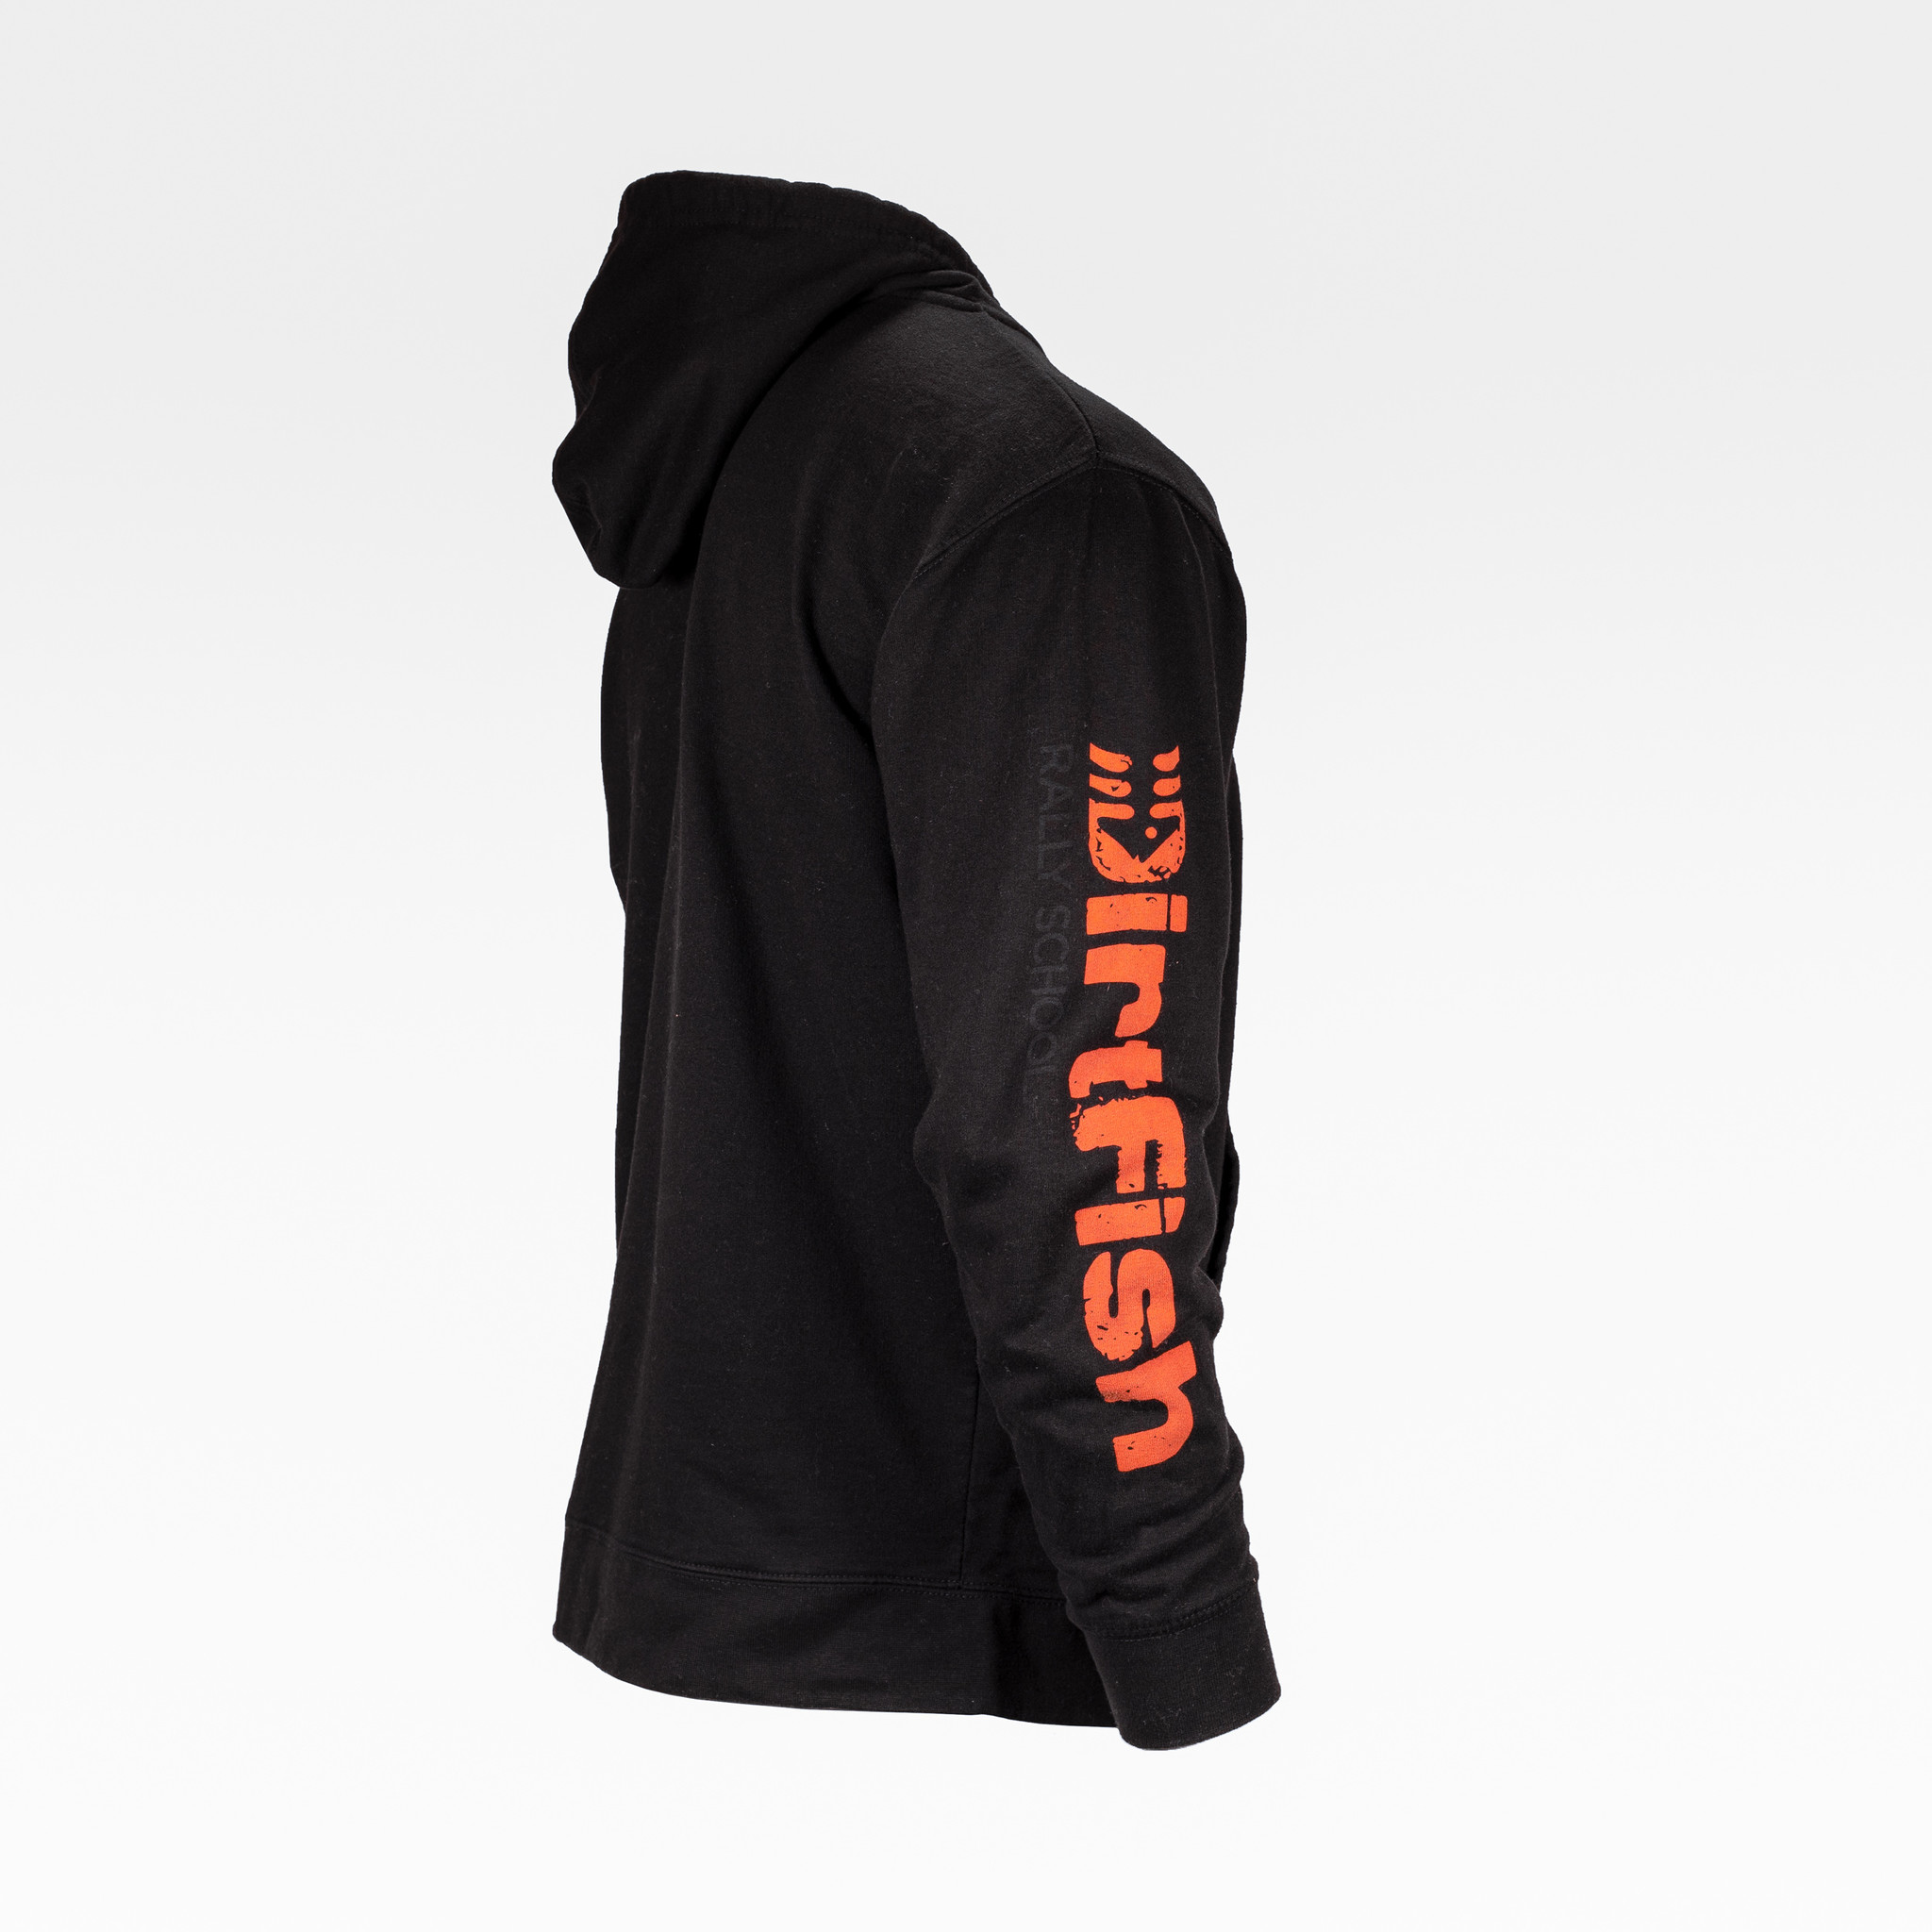 Black DirtFish Zip-up